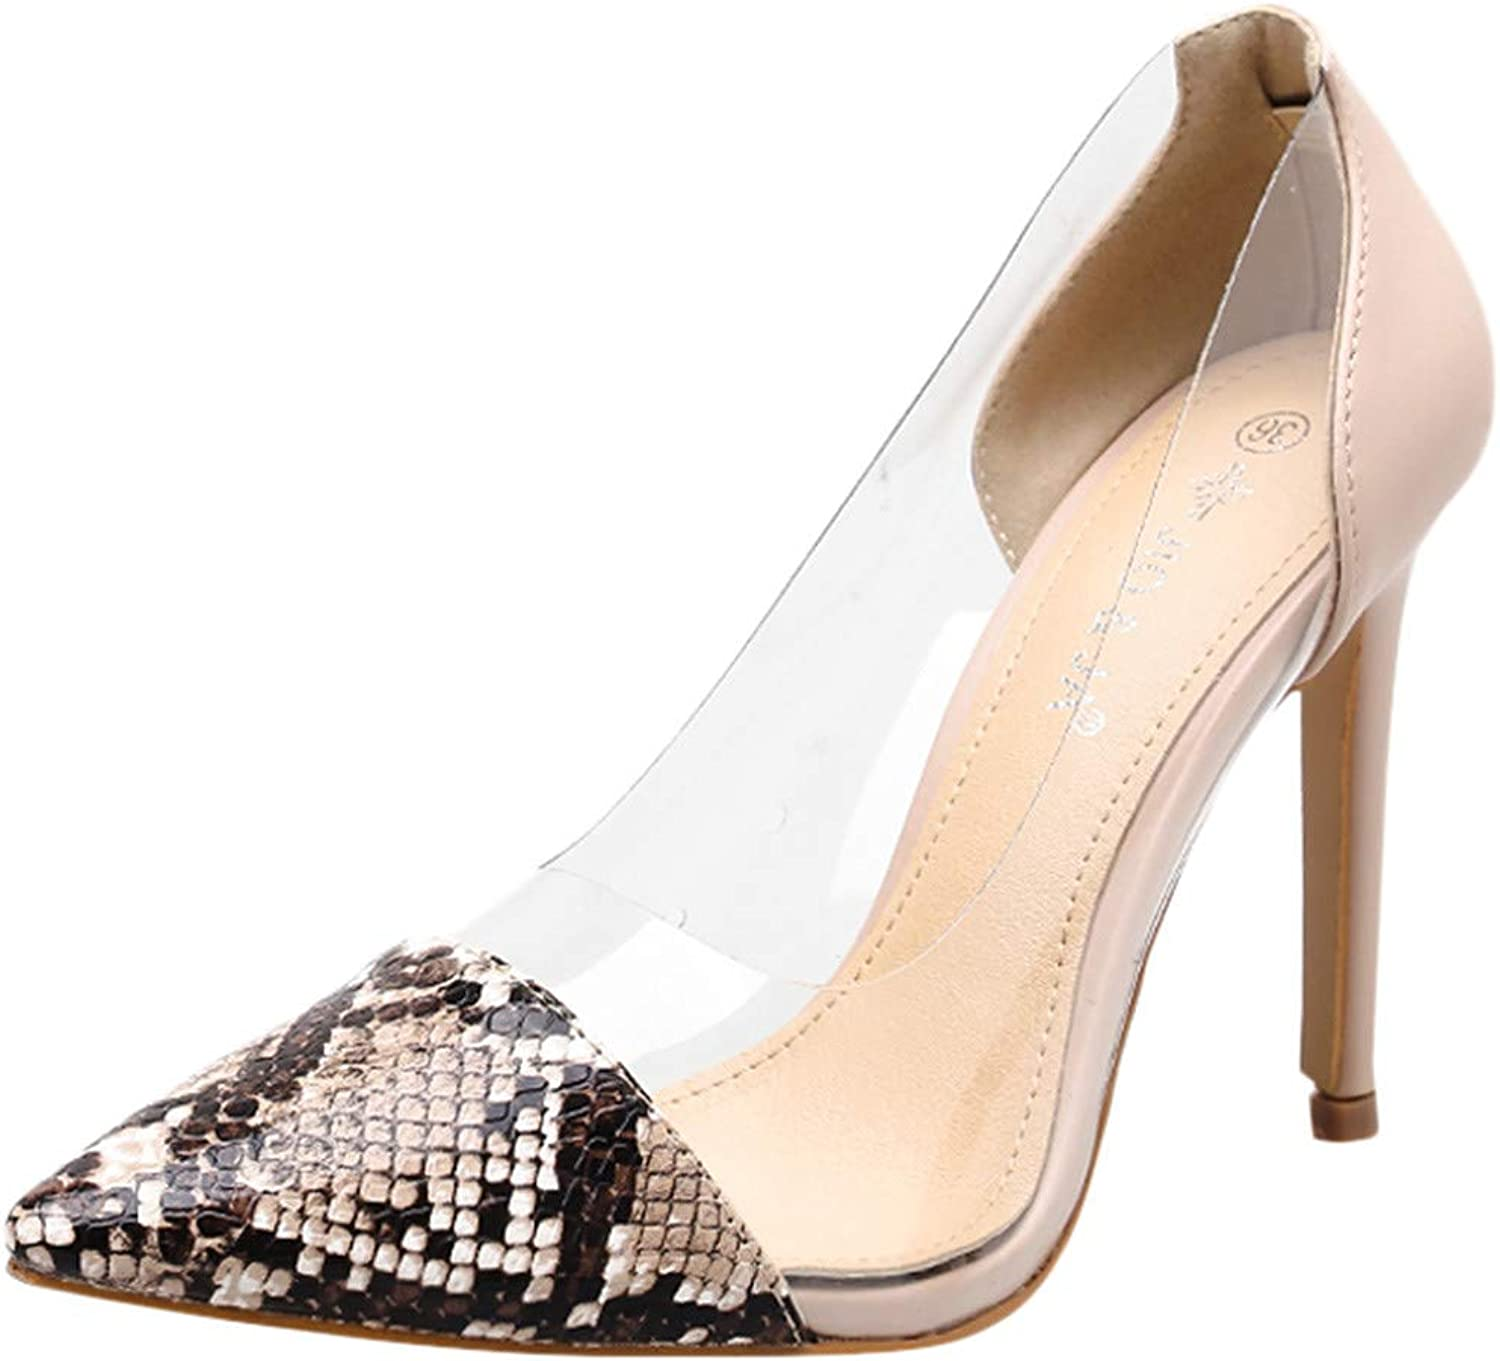 Theshy Sexy Women's Pointed Toe Snake Skin Pattern Transparent High Heel shoes Sandals